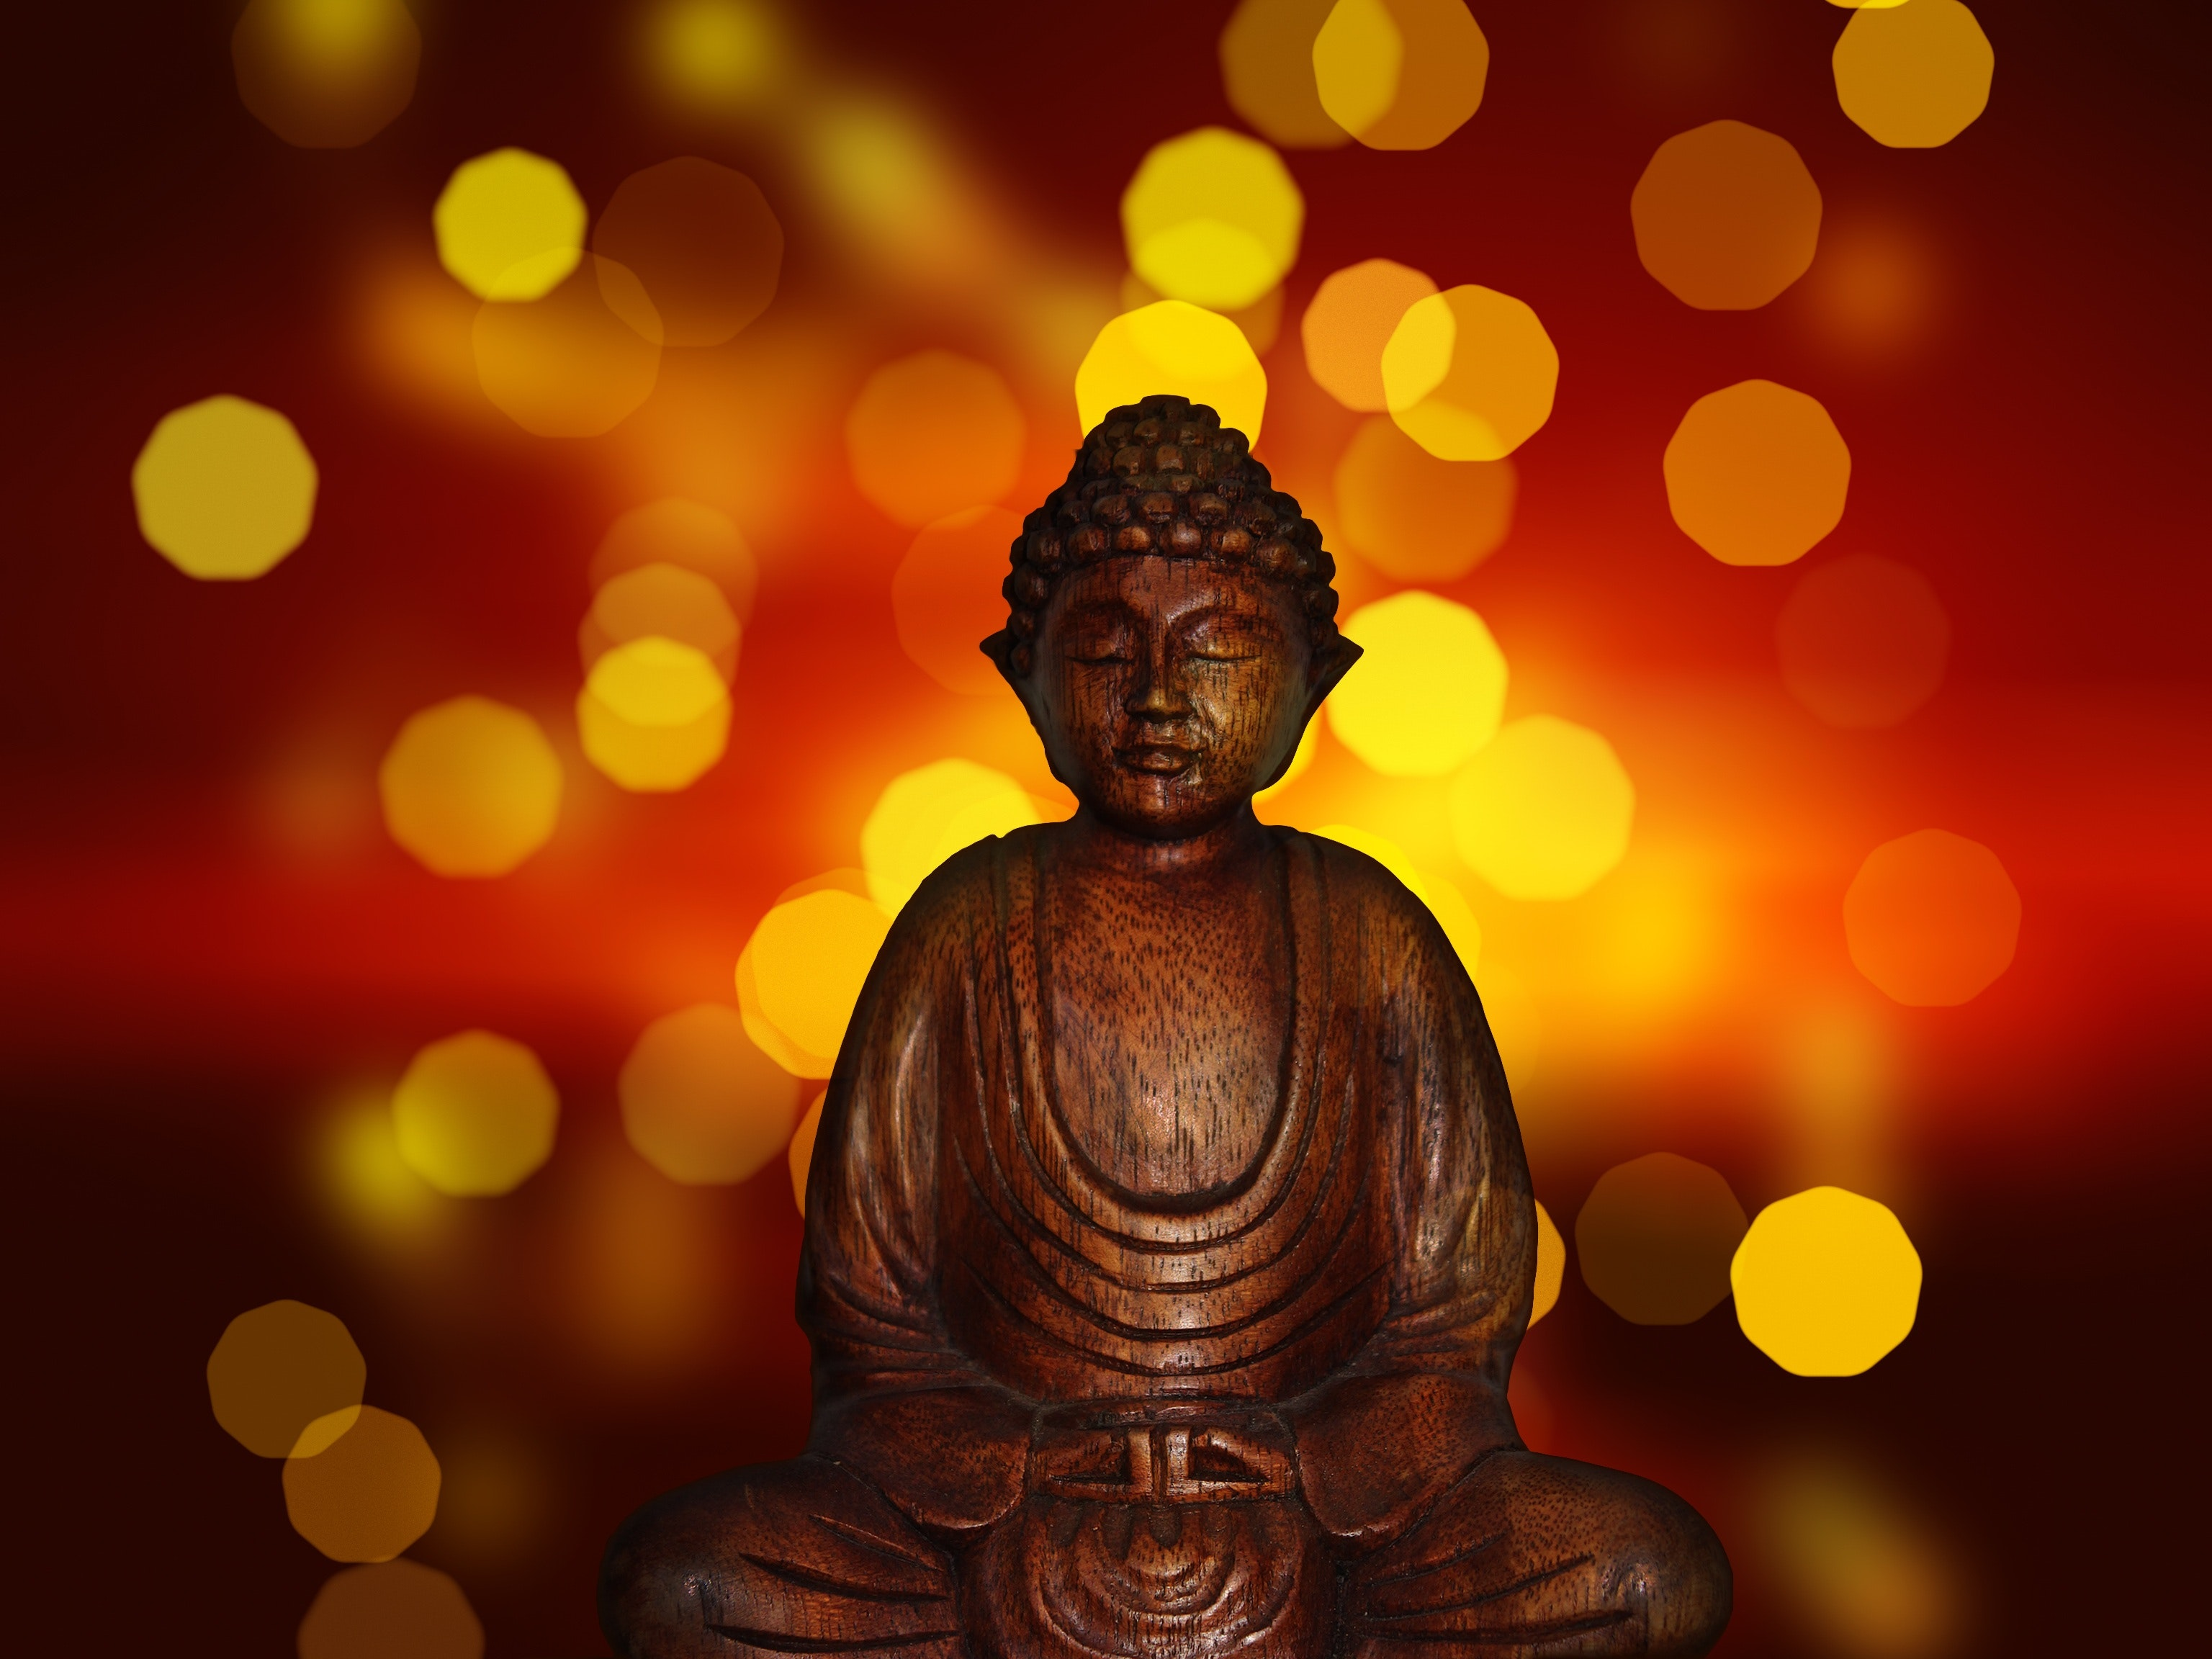 Guided meditation leads to mindfulness